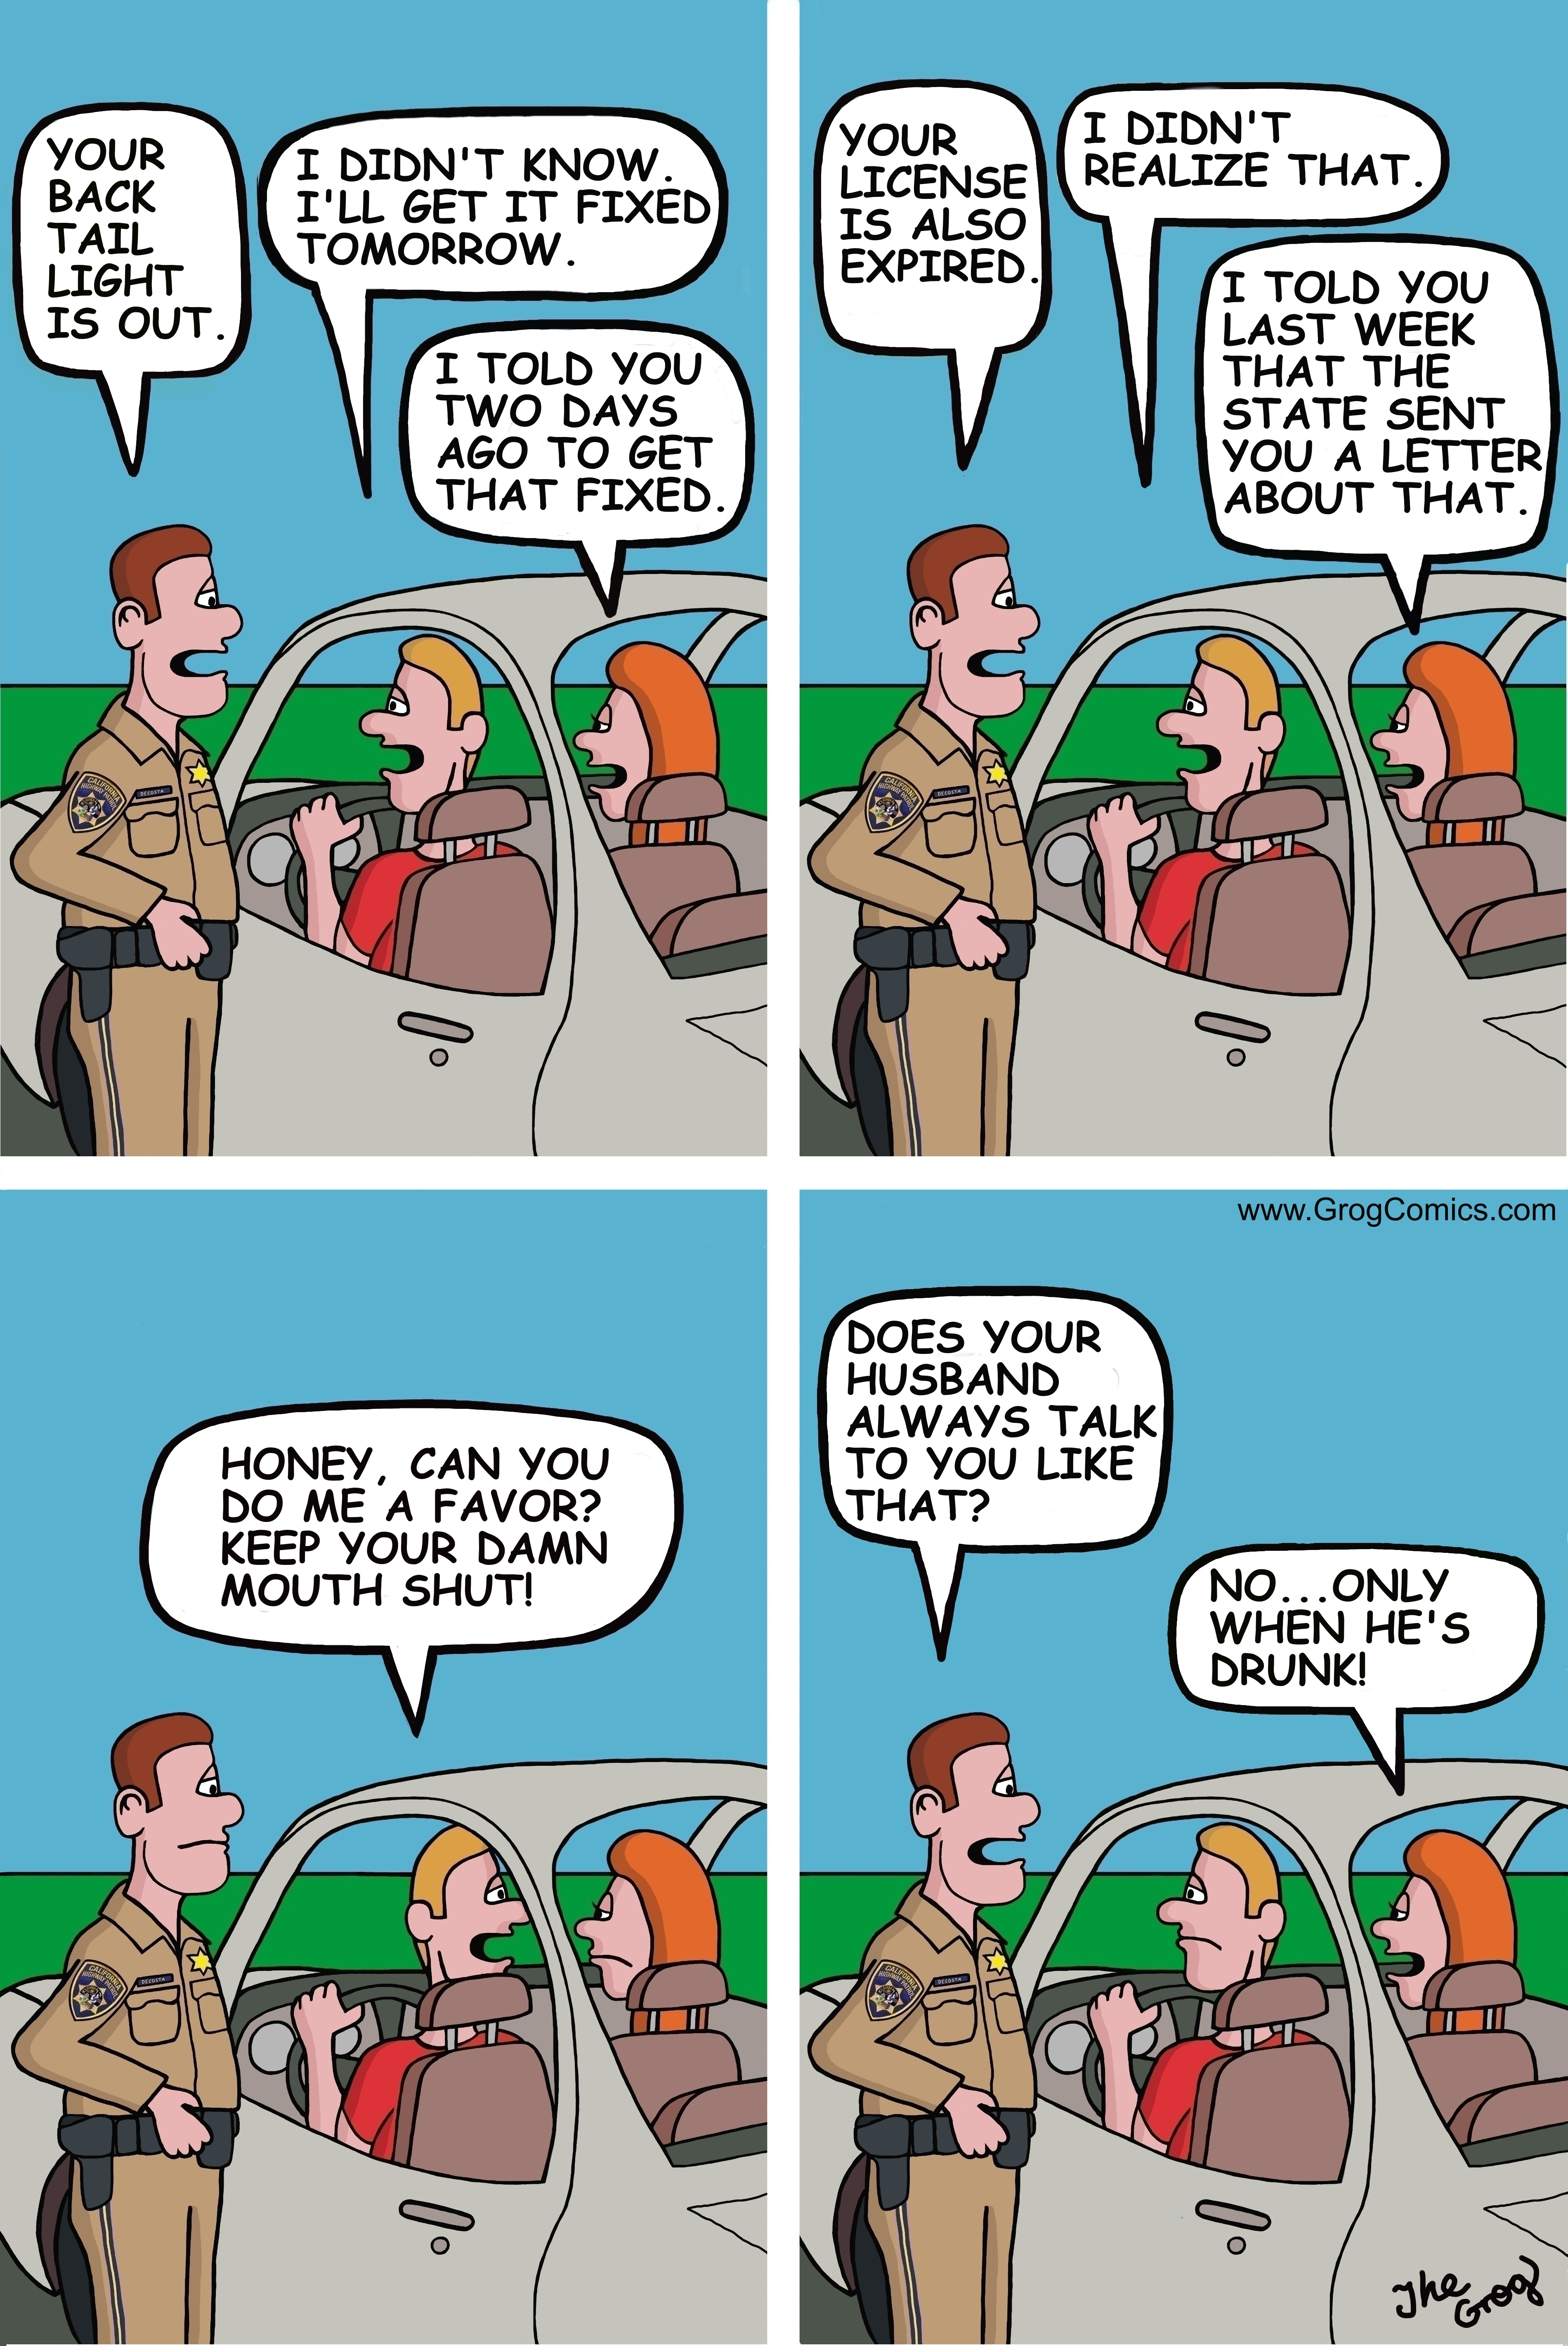 "A husband and wife get pulled over by a policeman. The husband is driving. The officer walks up to the car and says to the husband, ""Your back tail light is out"". The husband says, ""I didn't know. I'll get it fixed tomorrow."" ""I told you two days ago to get that fixed"", says the wife. Your license is also expired"", says the officer. The husband says, ""I didn't realize that"". ""I told you last week that the state sent you a letter about that"", says the wife. The husband is now getting very upset about his wife's interruptions. He says, ""Honey, can you do me a favor? Keep your damn mouth shut!"" The officer says to the wife, ""Does your husband always talk to you like that?"" ""No"", says the wife, ""only when he's drunk."""